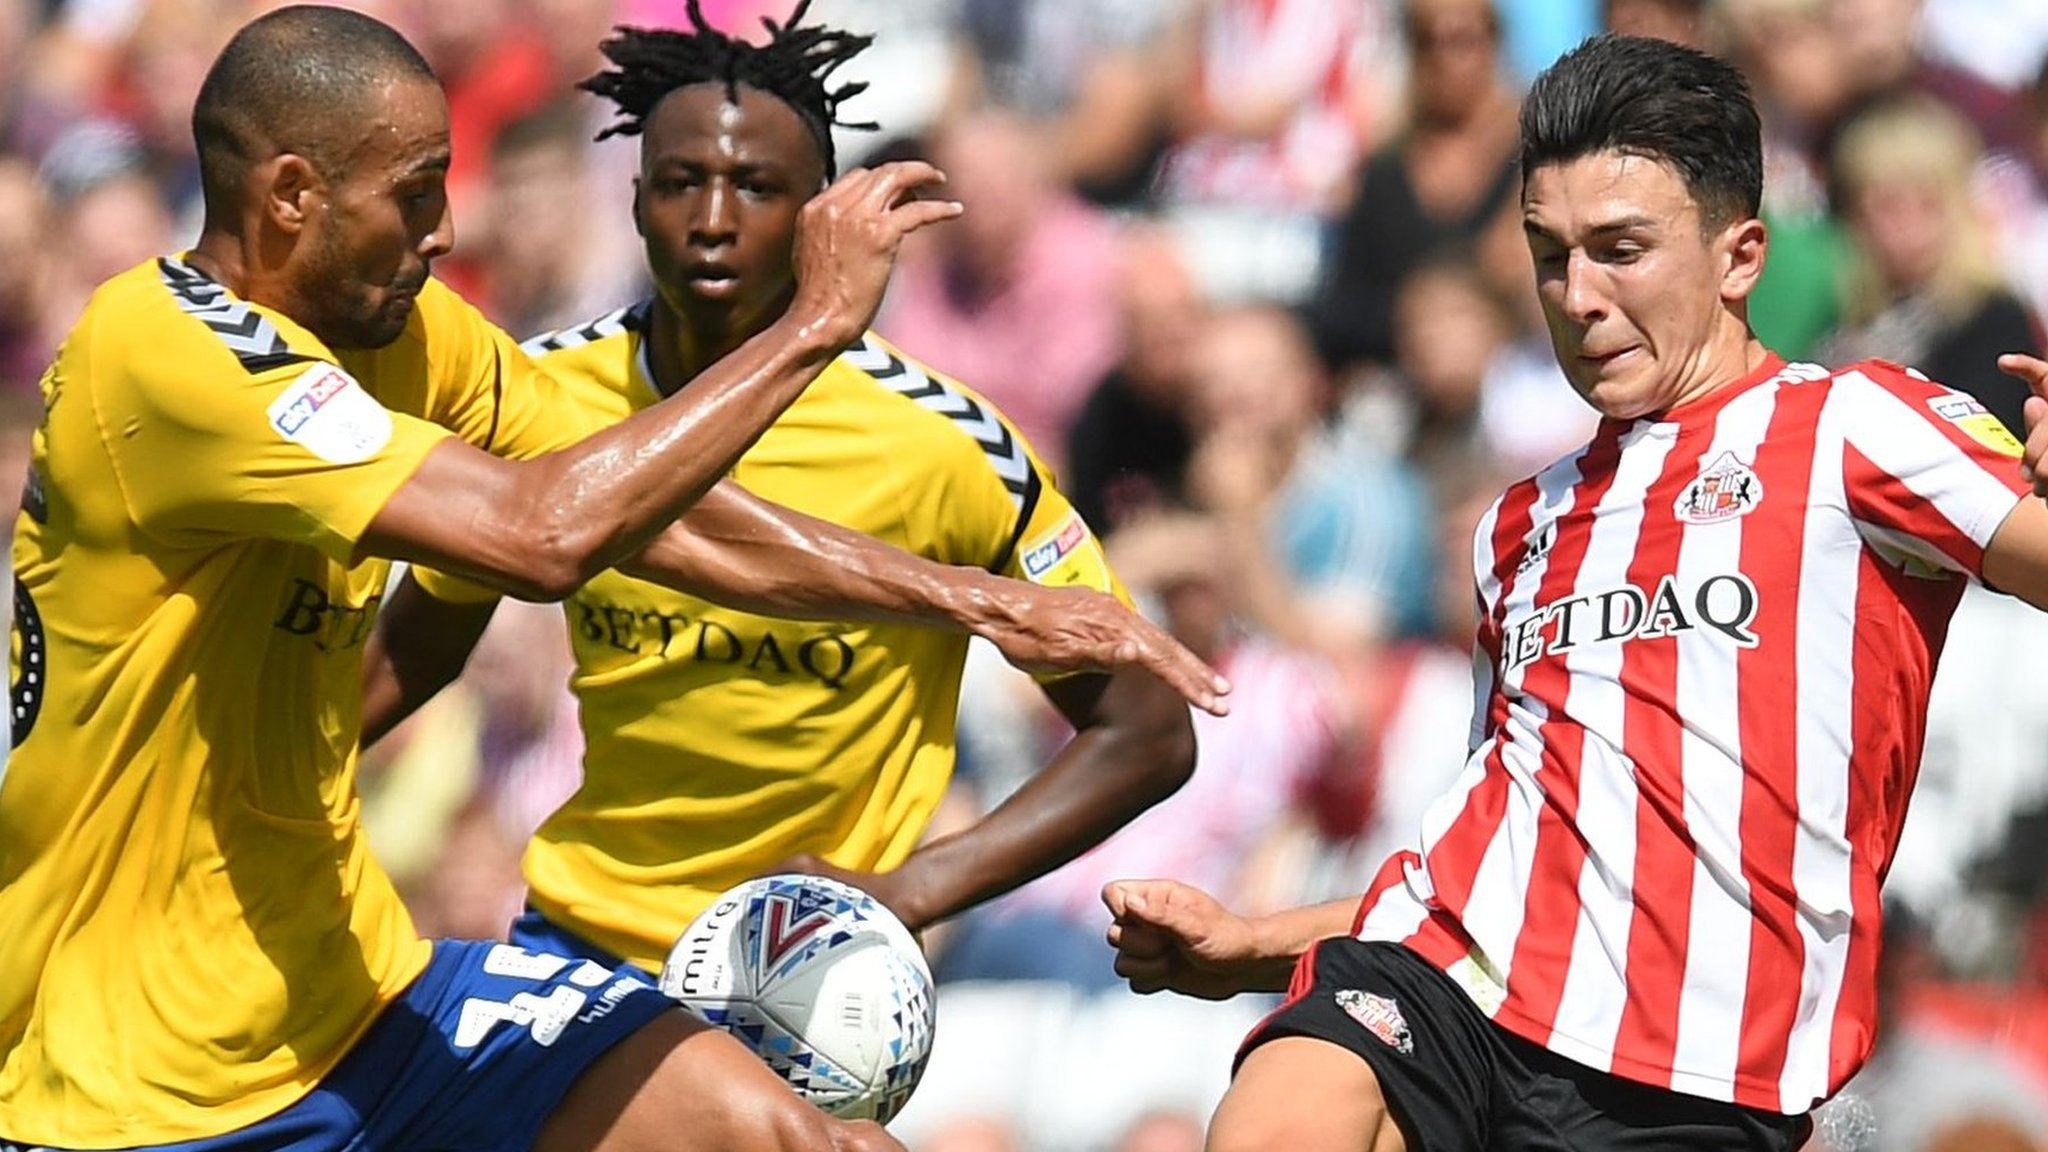 League One play-off final: Charlton Athletic v Sunderland